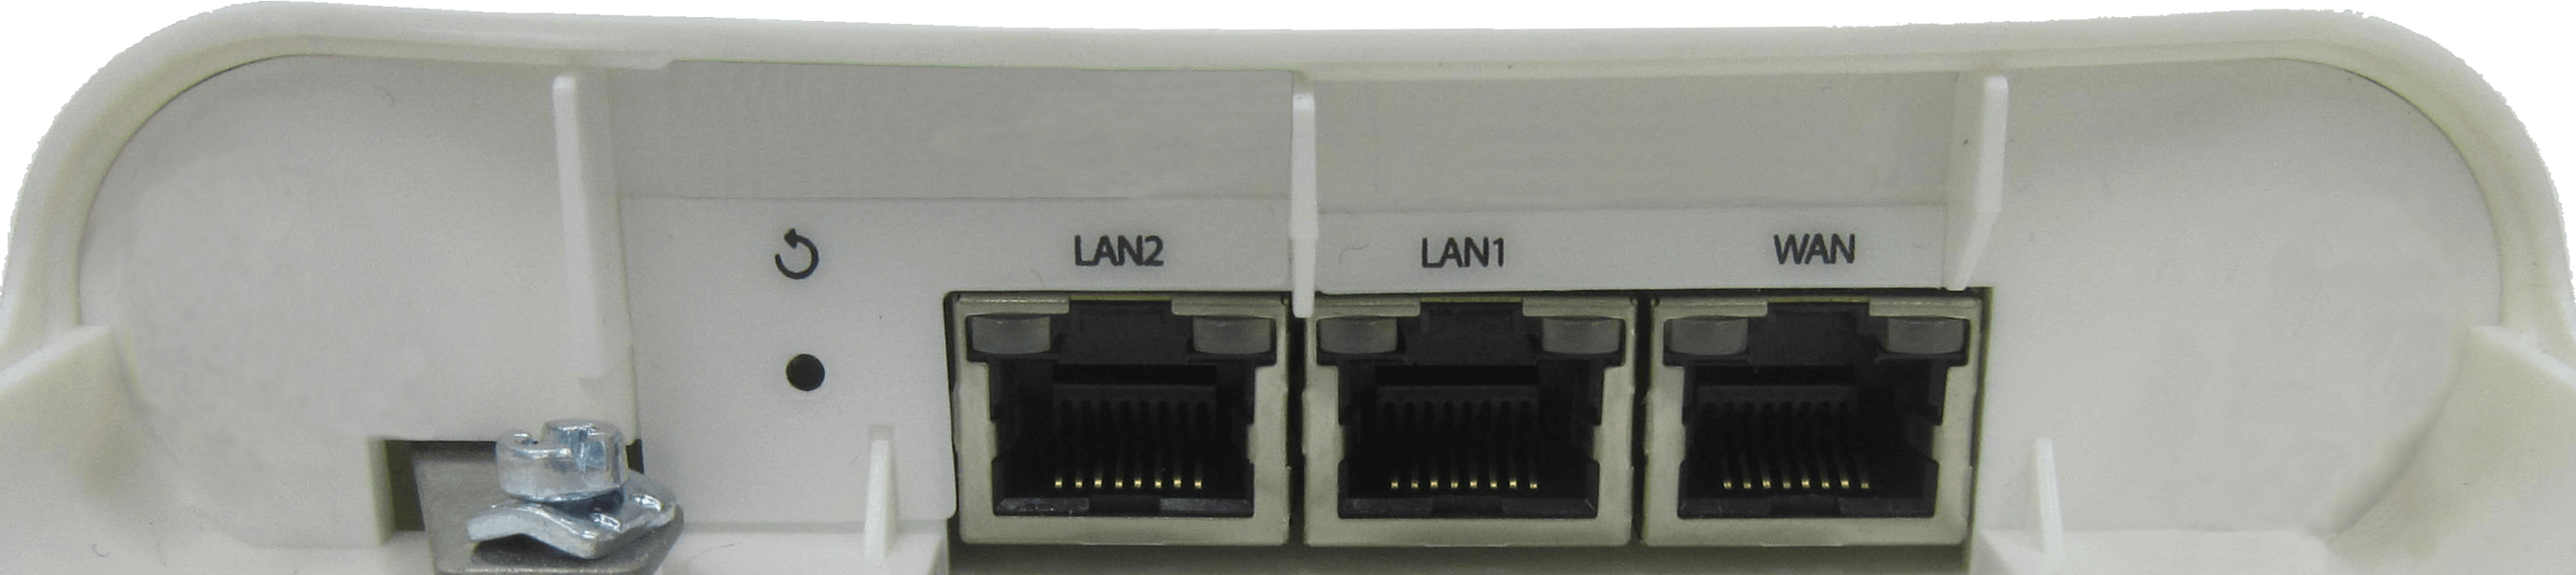 Pepwave Device Connector IP55 panel